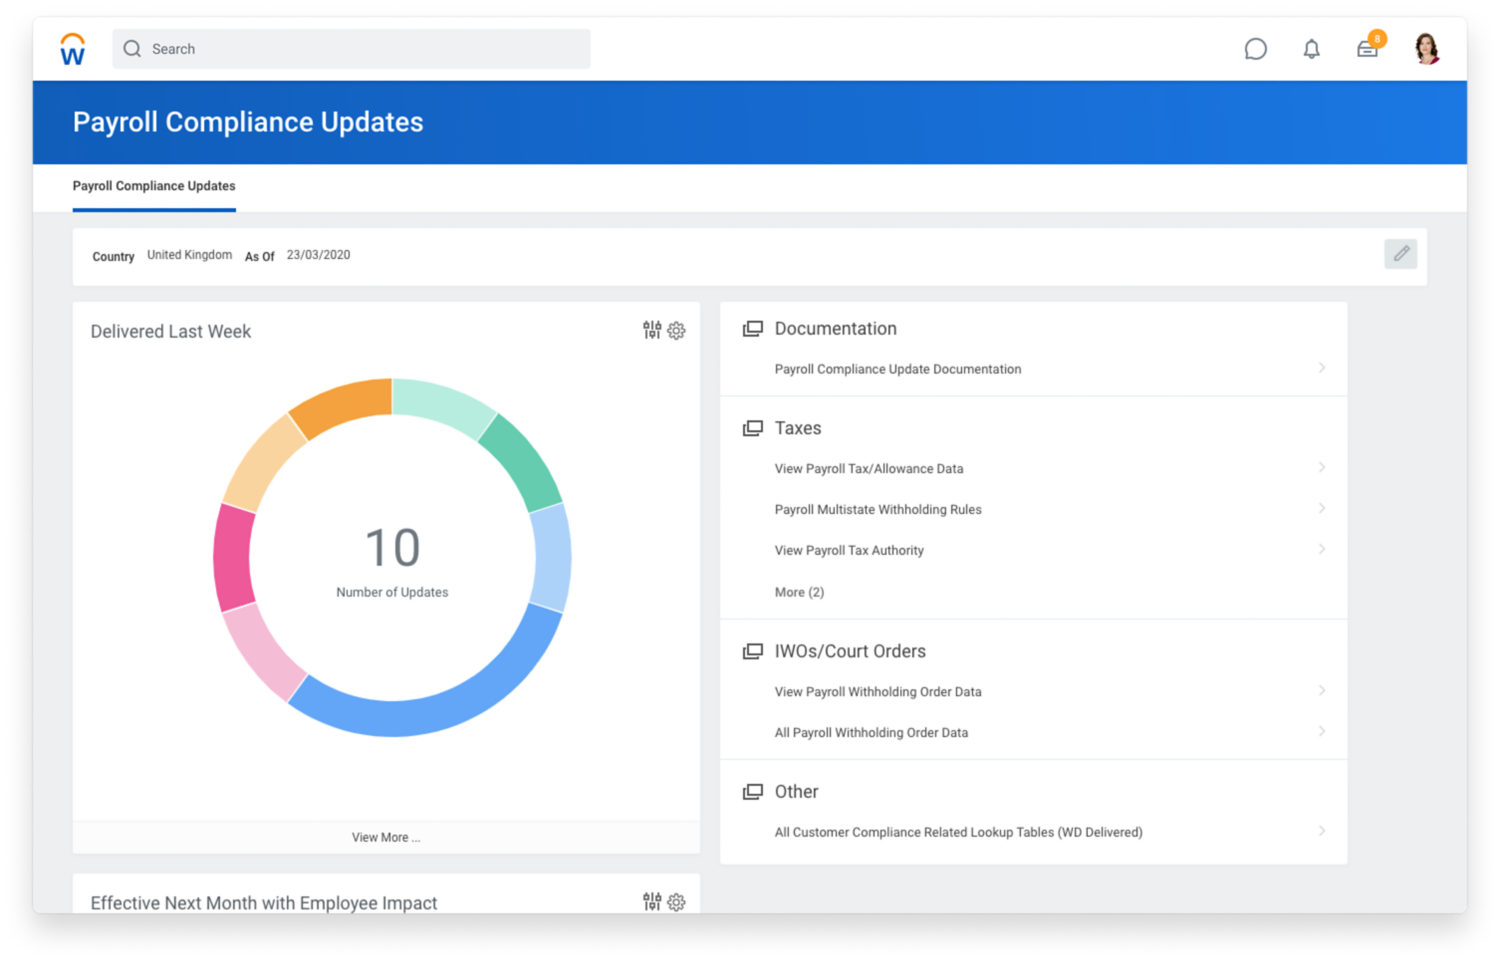 Payroll compliance dashboard for the UK showing delivered compliance updates for the previous week.